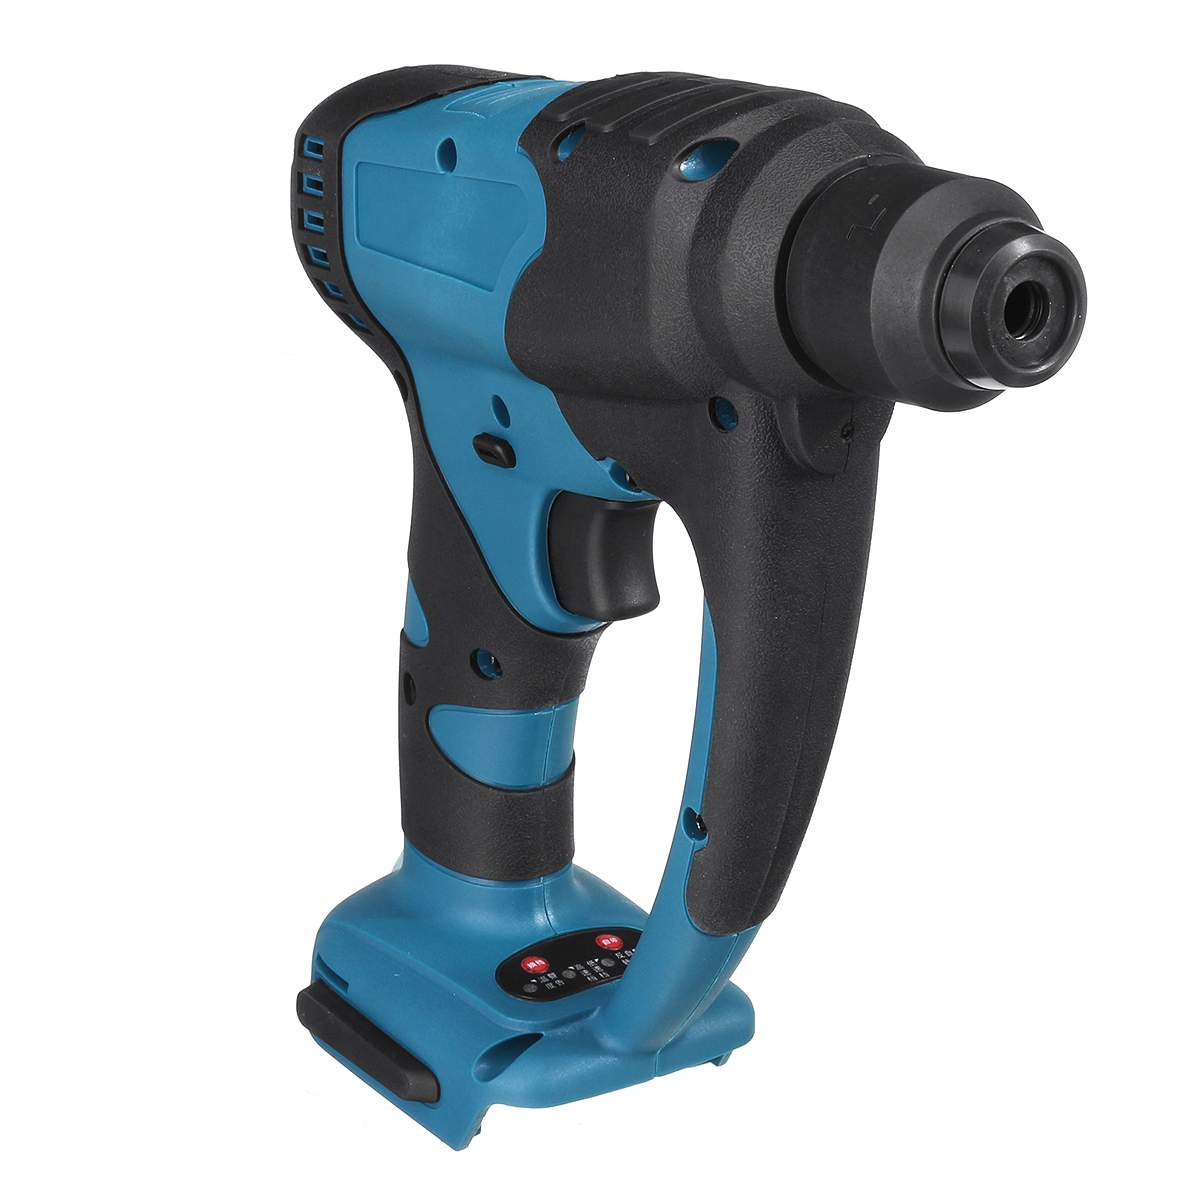 18V Rechargeable Brushless Cordless Rotary Hammer Drill Electric Demolition Hammer Power Impact Drill Adapted To Makita Battery